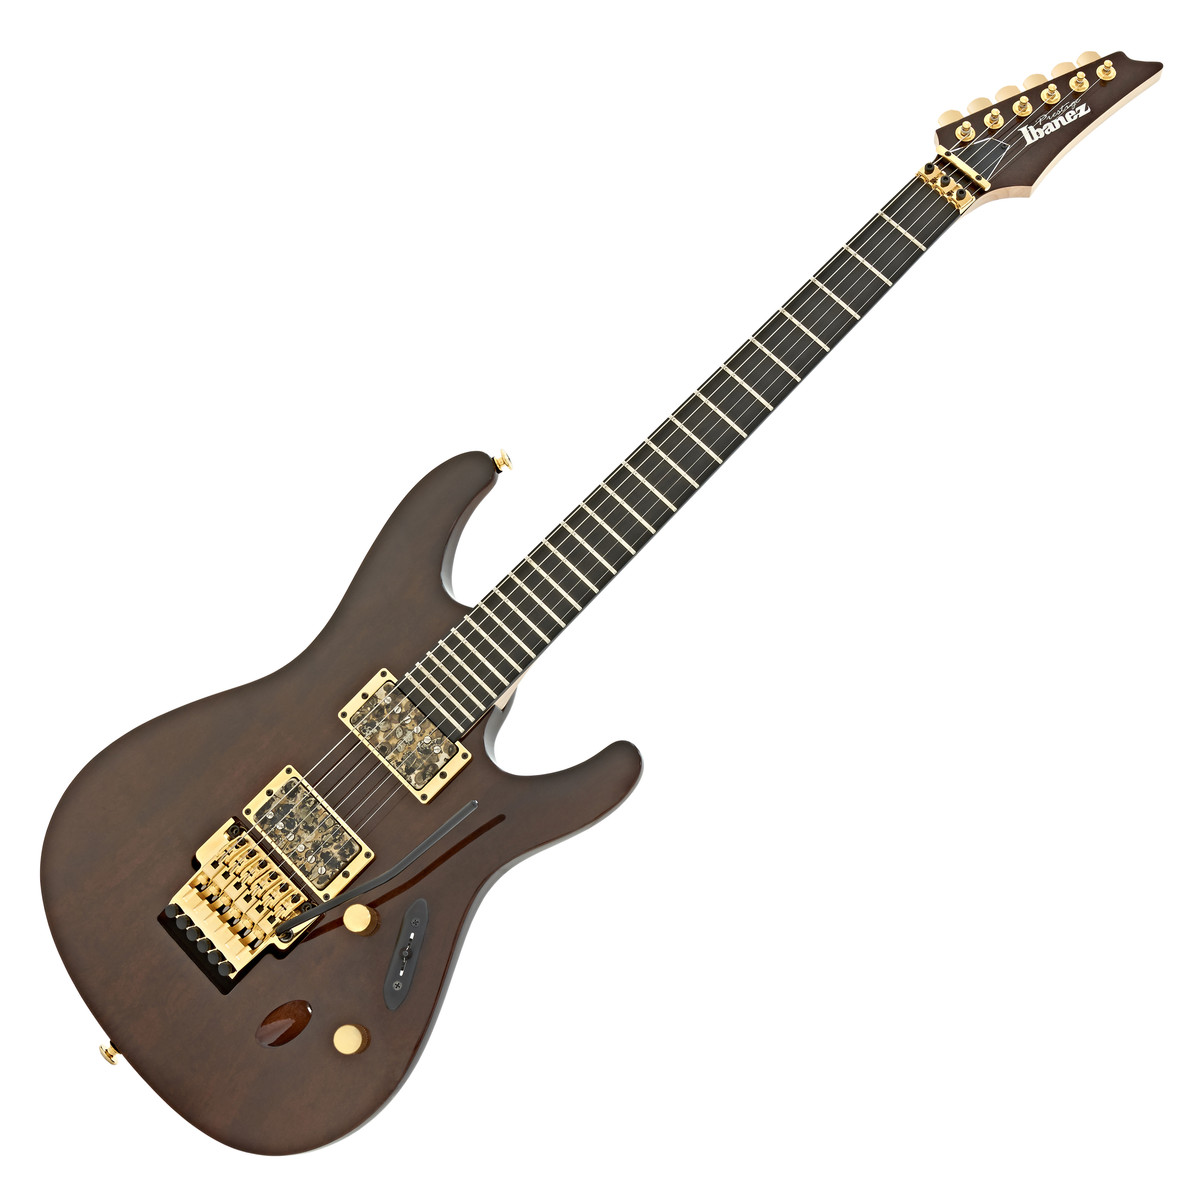 ibanez s6uc 39 uppercut 39 prestige electric guitar dark mocha at. Black Bedroom Furniture Sets. Home Design Ideas